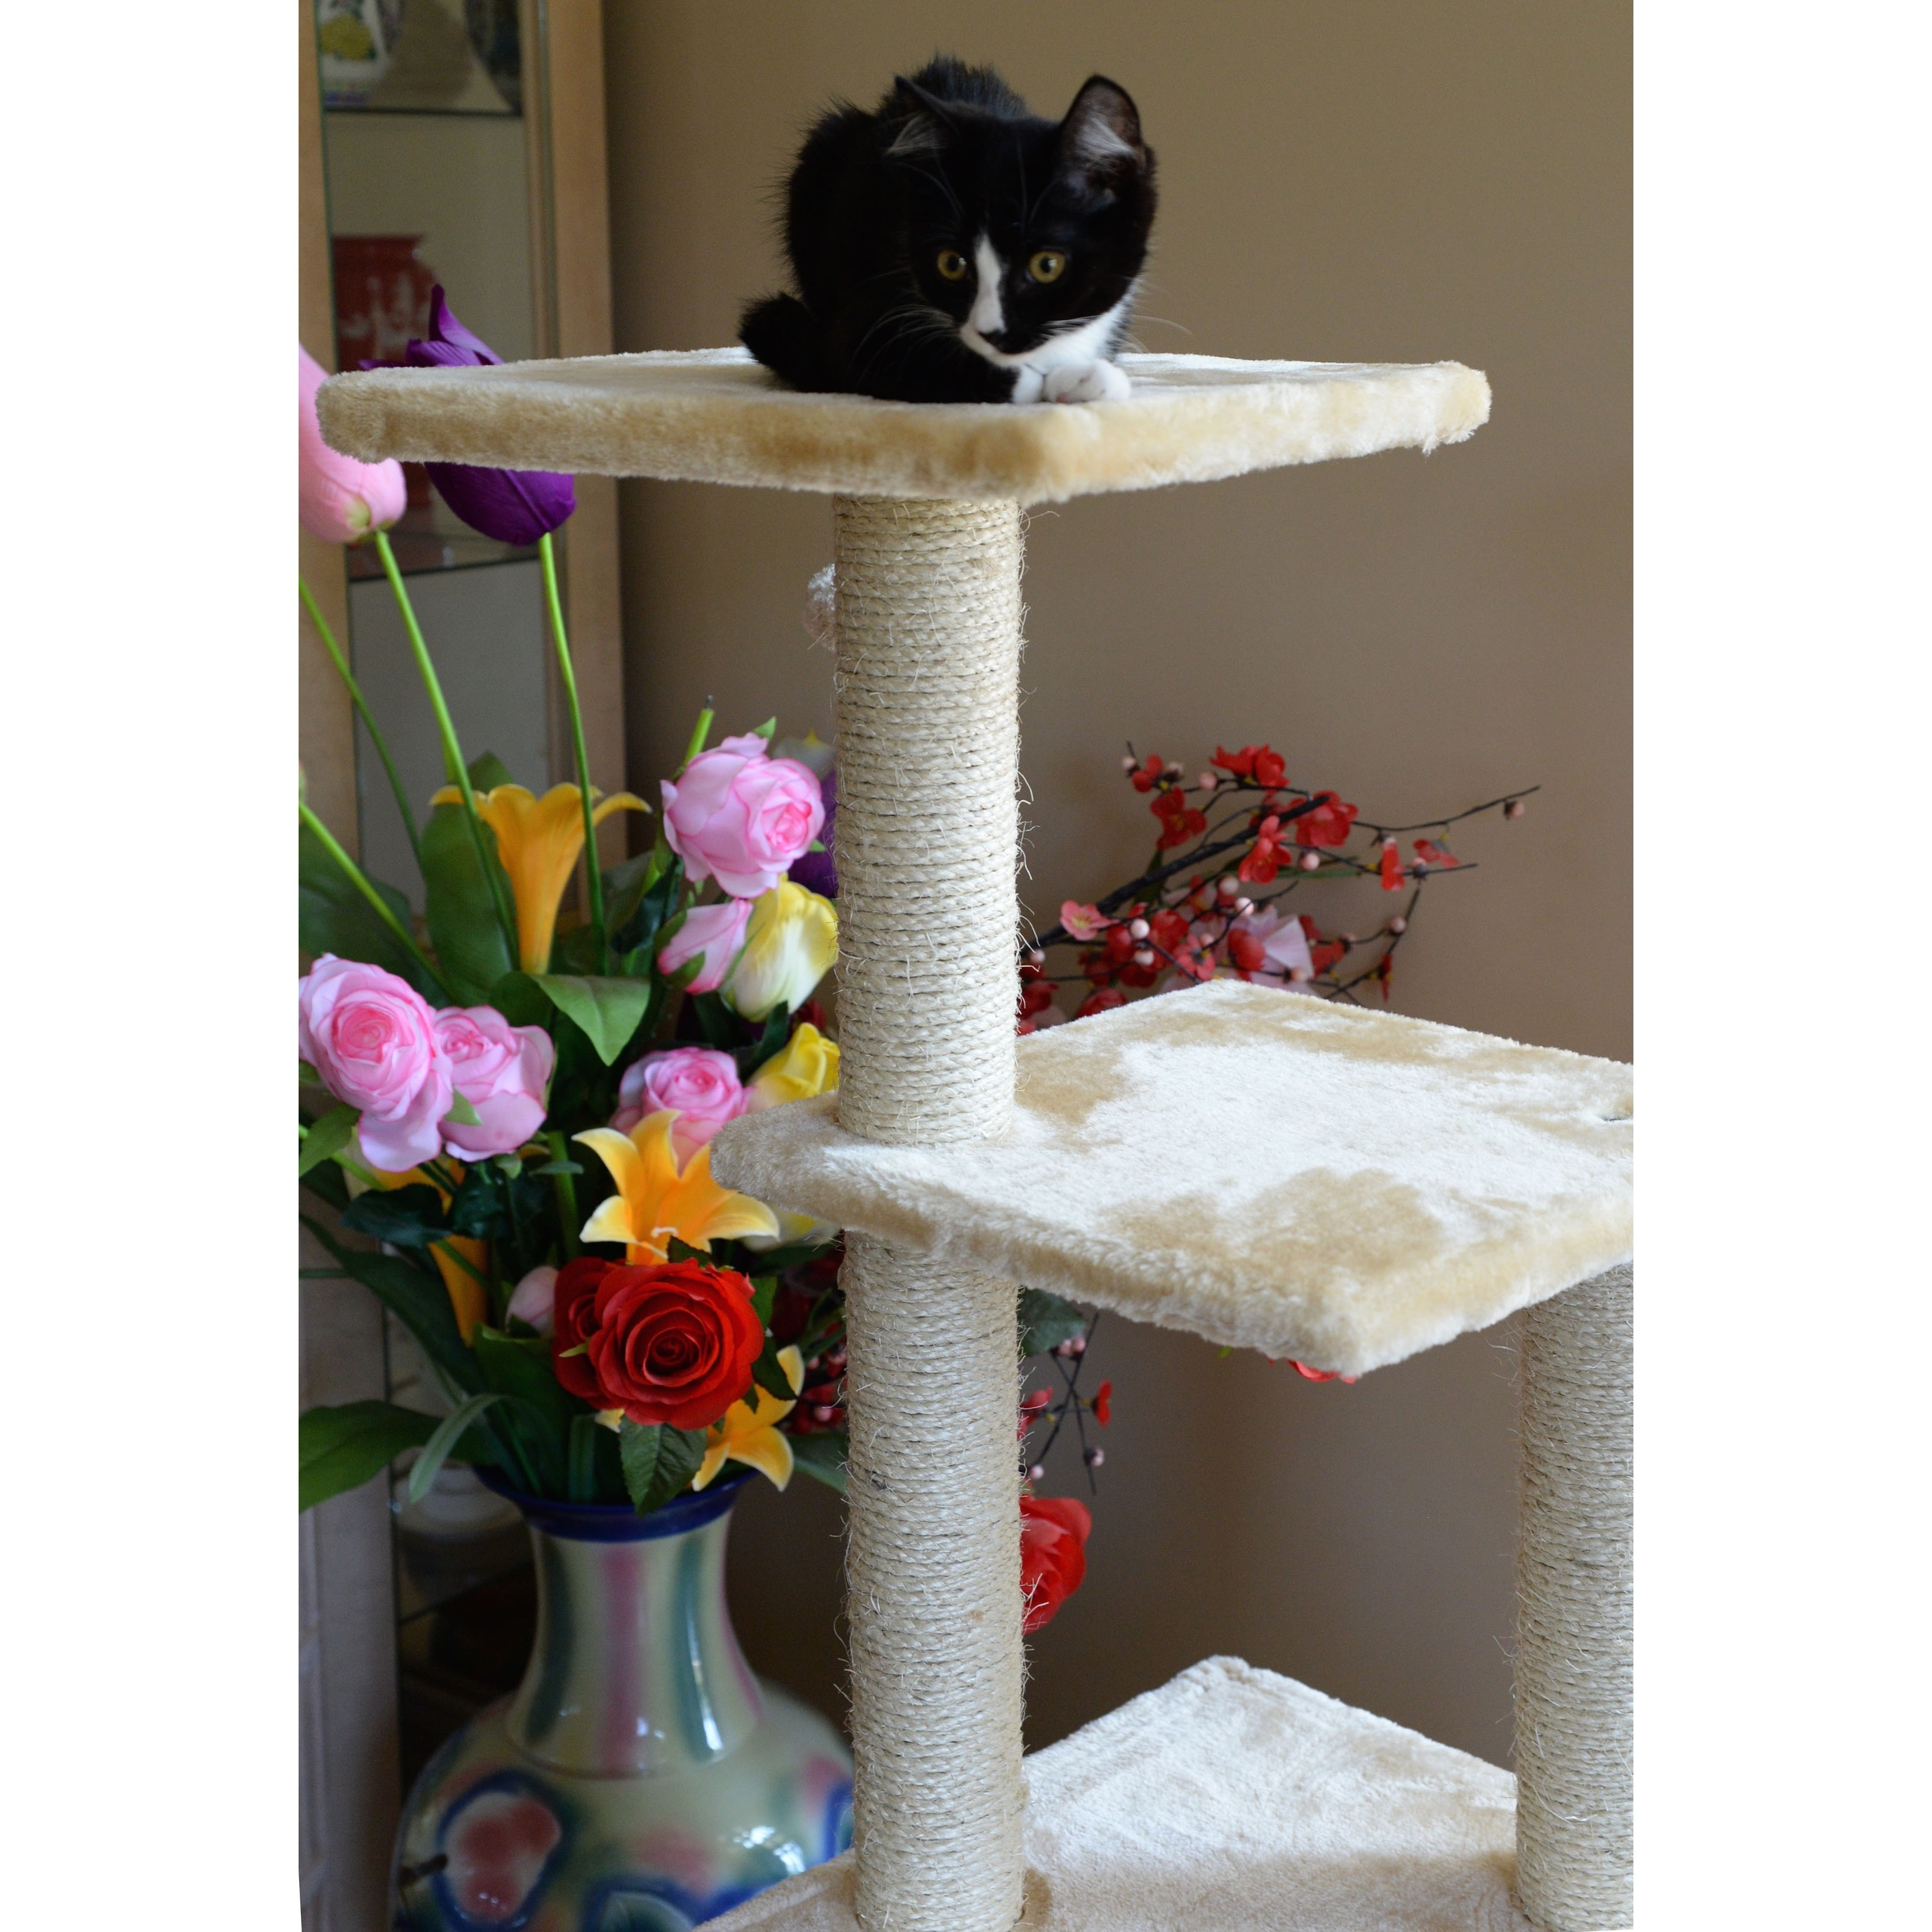 3ae32be4786d Shop Armarkat Cat Tree Pet Furniture Condo - Free Shipping Today -  Overstock - 4413792